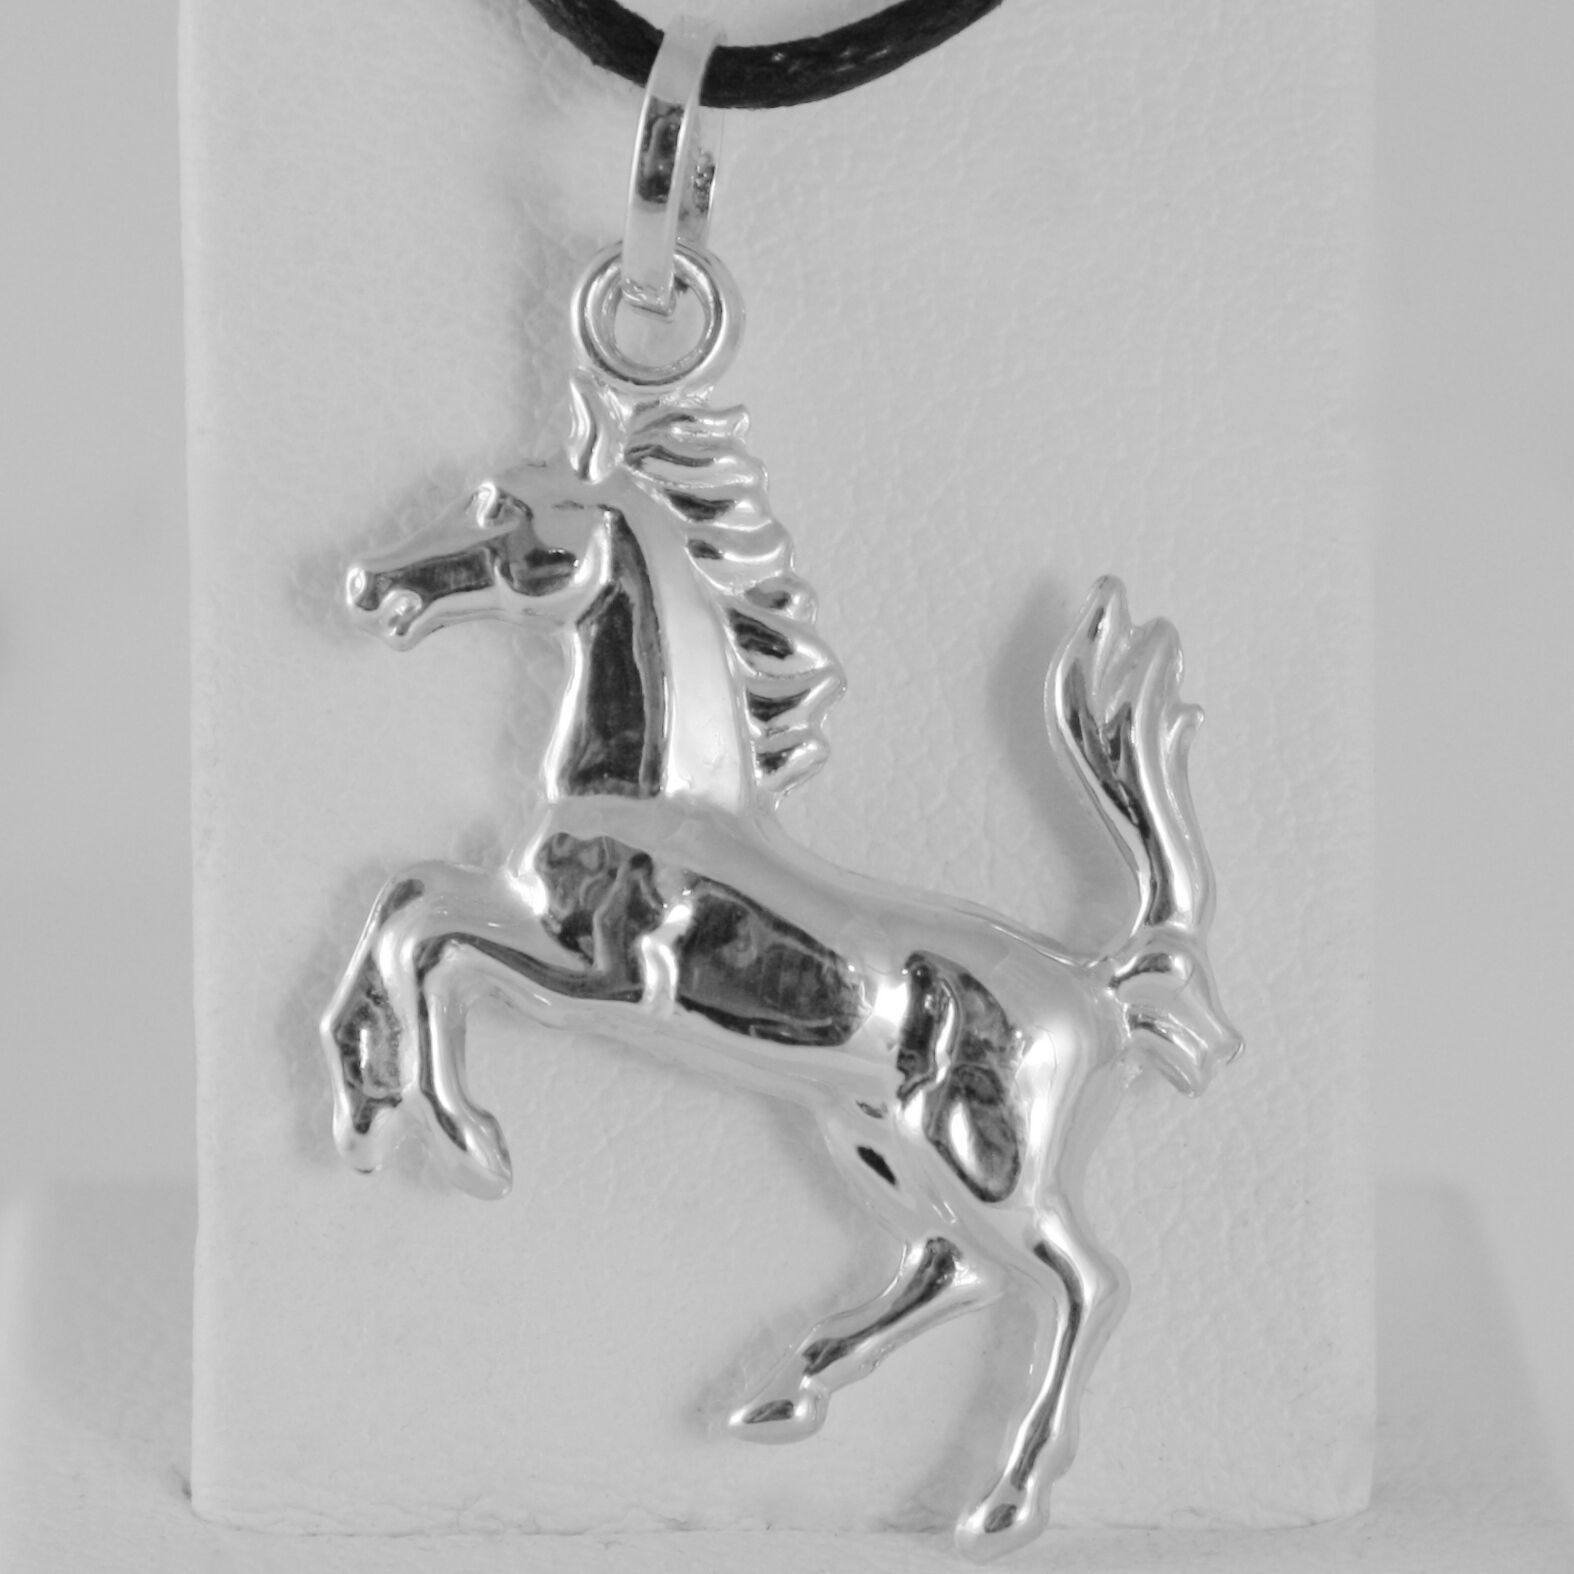 18K WHITE GOLD ROUNDED HORSE PENDANT CHARM 32 MM SMOOTH BRIGHT MADE IN ITALY